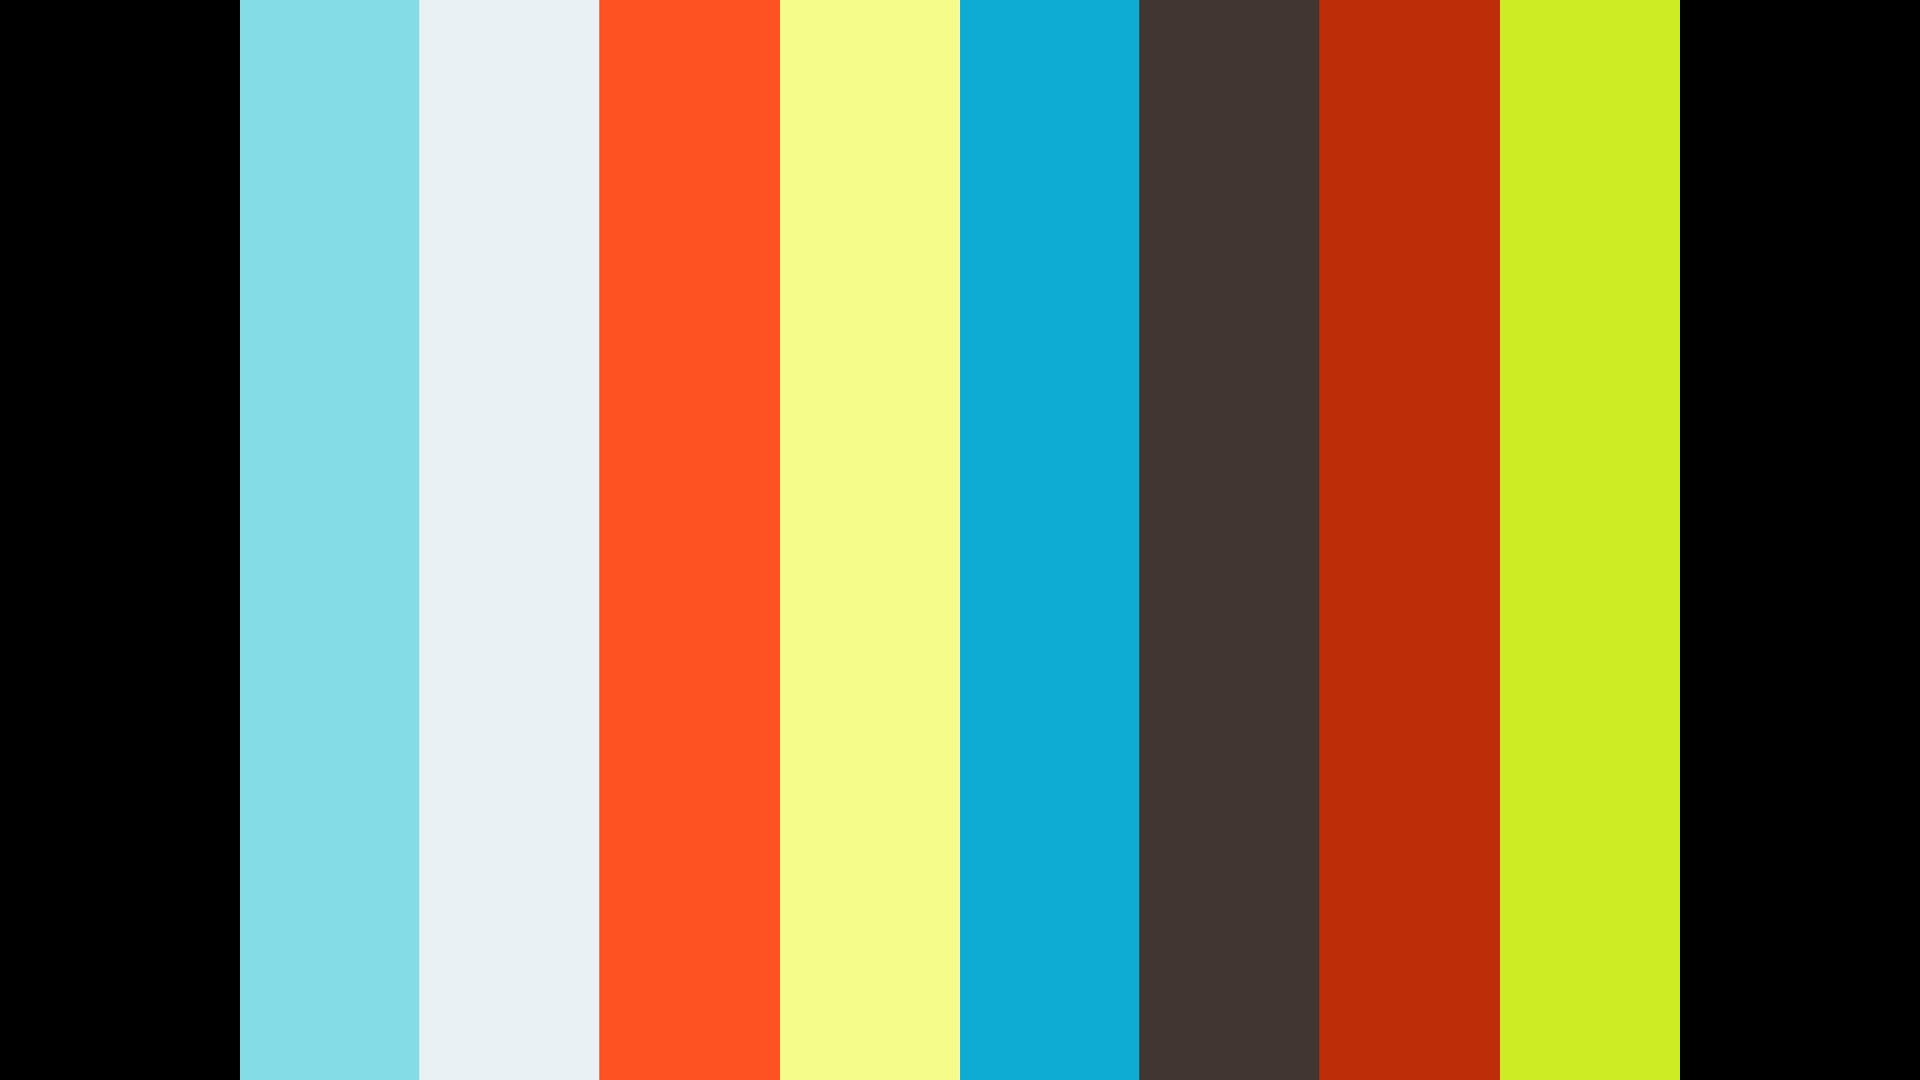 #Comfort #Compassion #Caring: The Rev. Wayne Bumbry